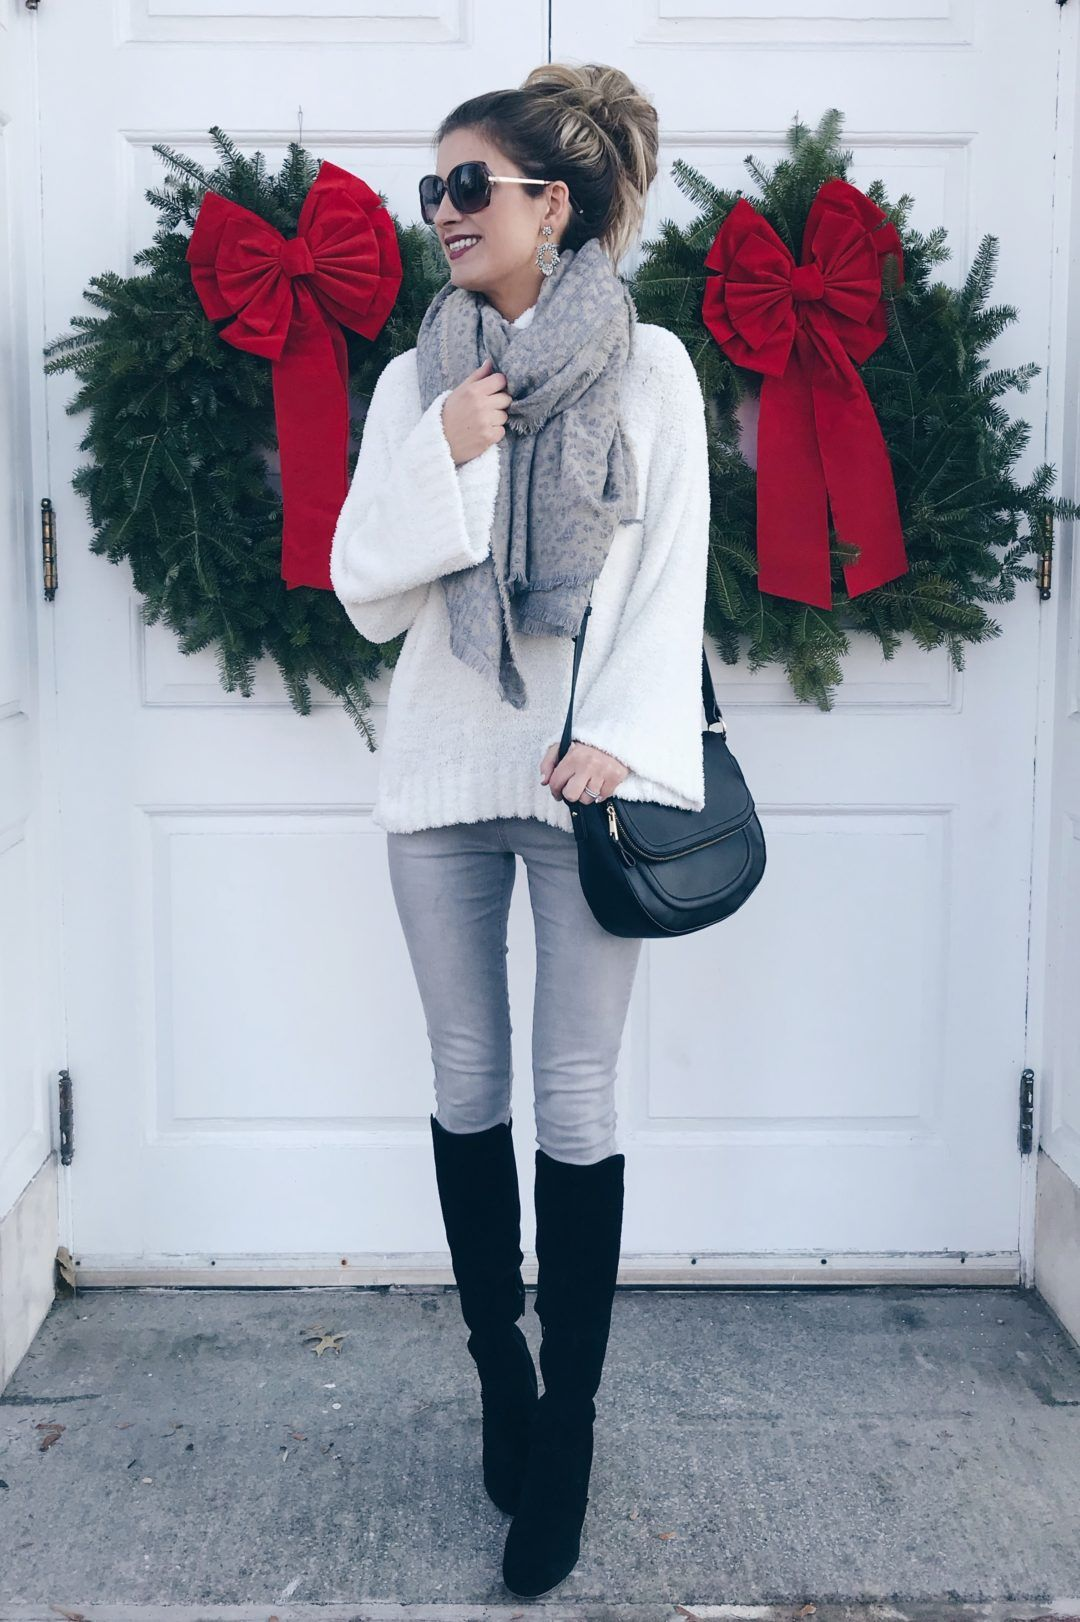 c6b16383e43 holiday outfits with leggings - casual holiday outfit with denim leggings  and knee high boots